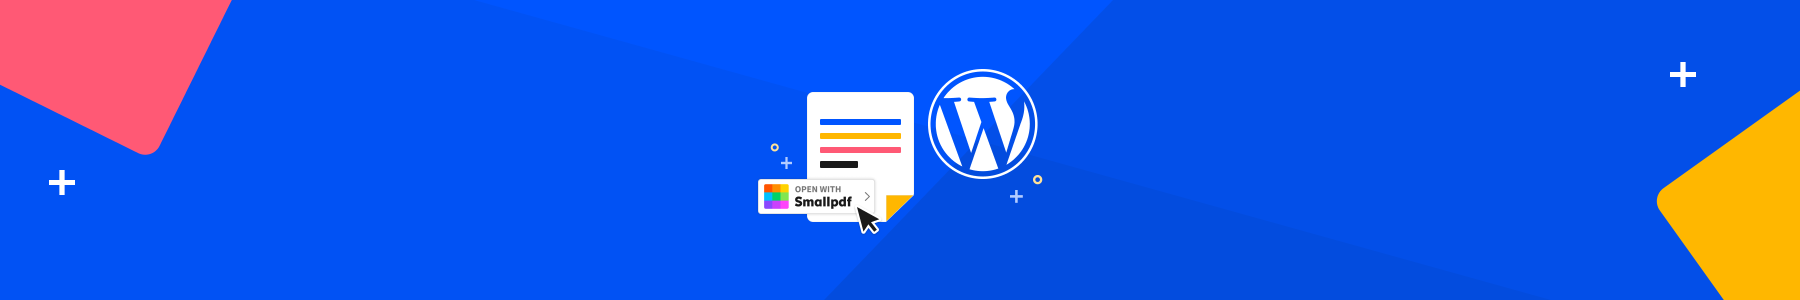 incorporar-pdf-wordpress@2x